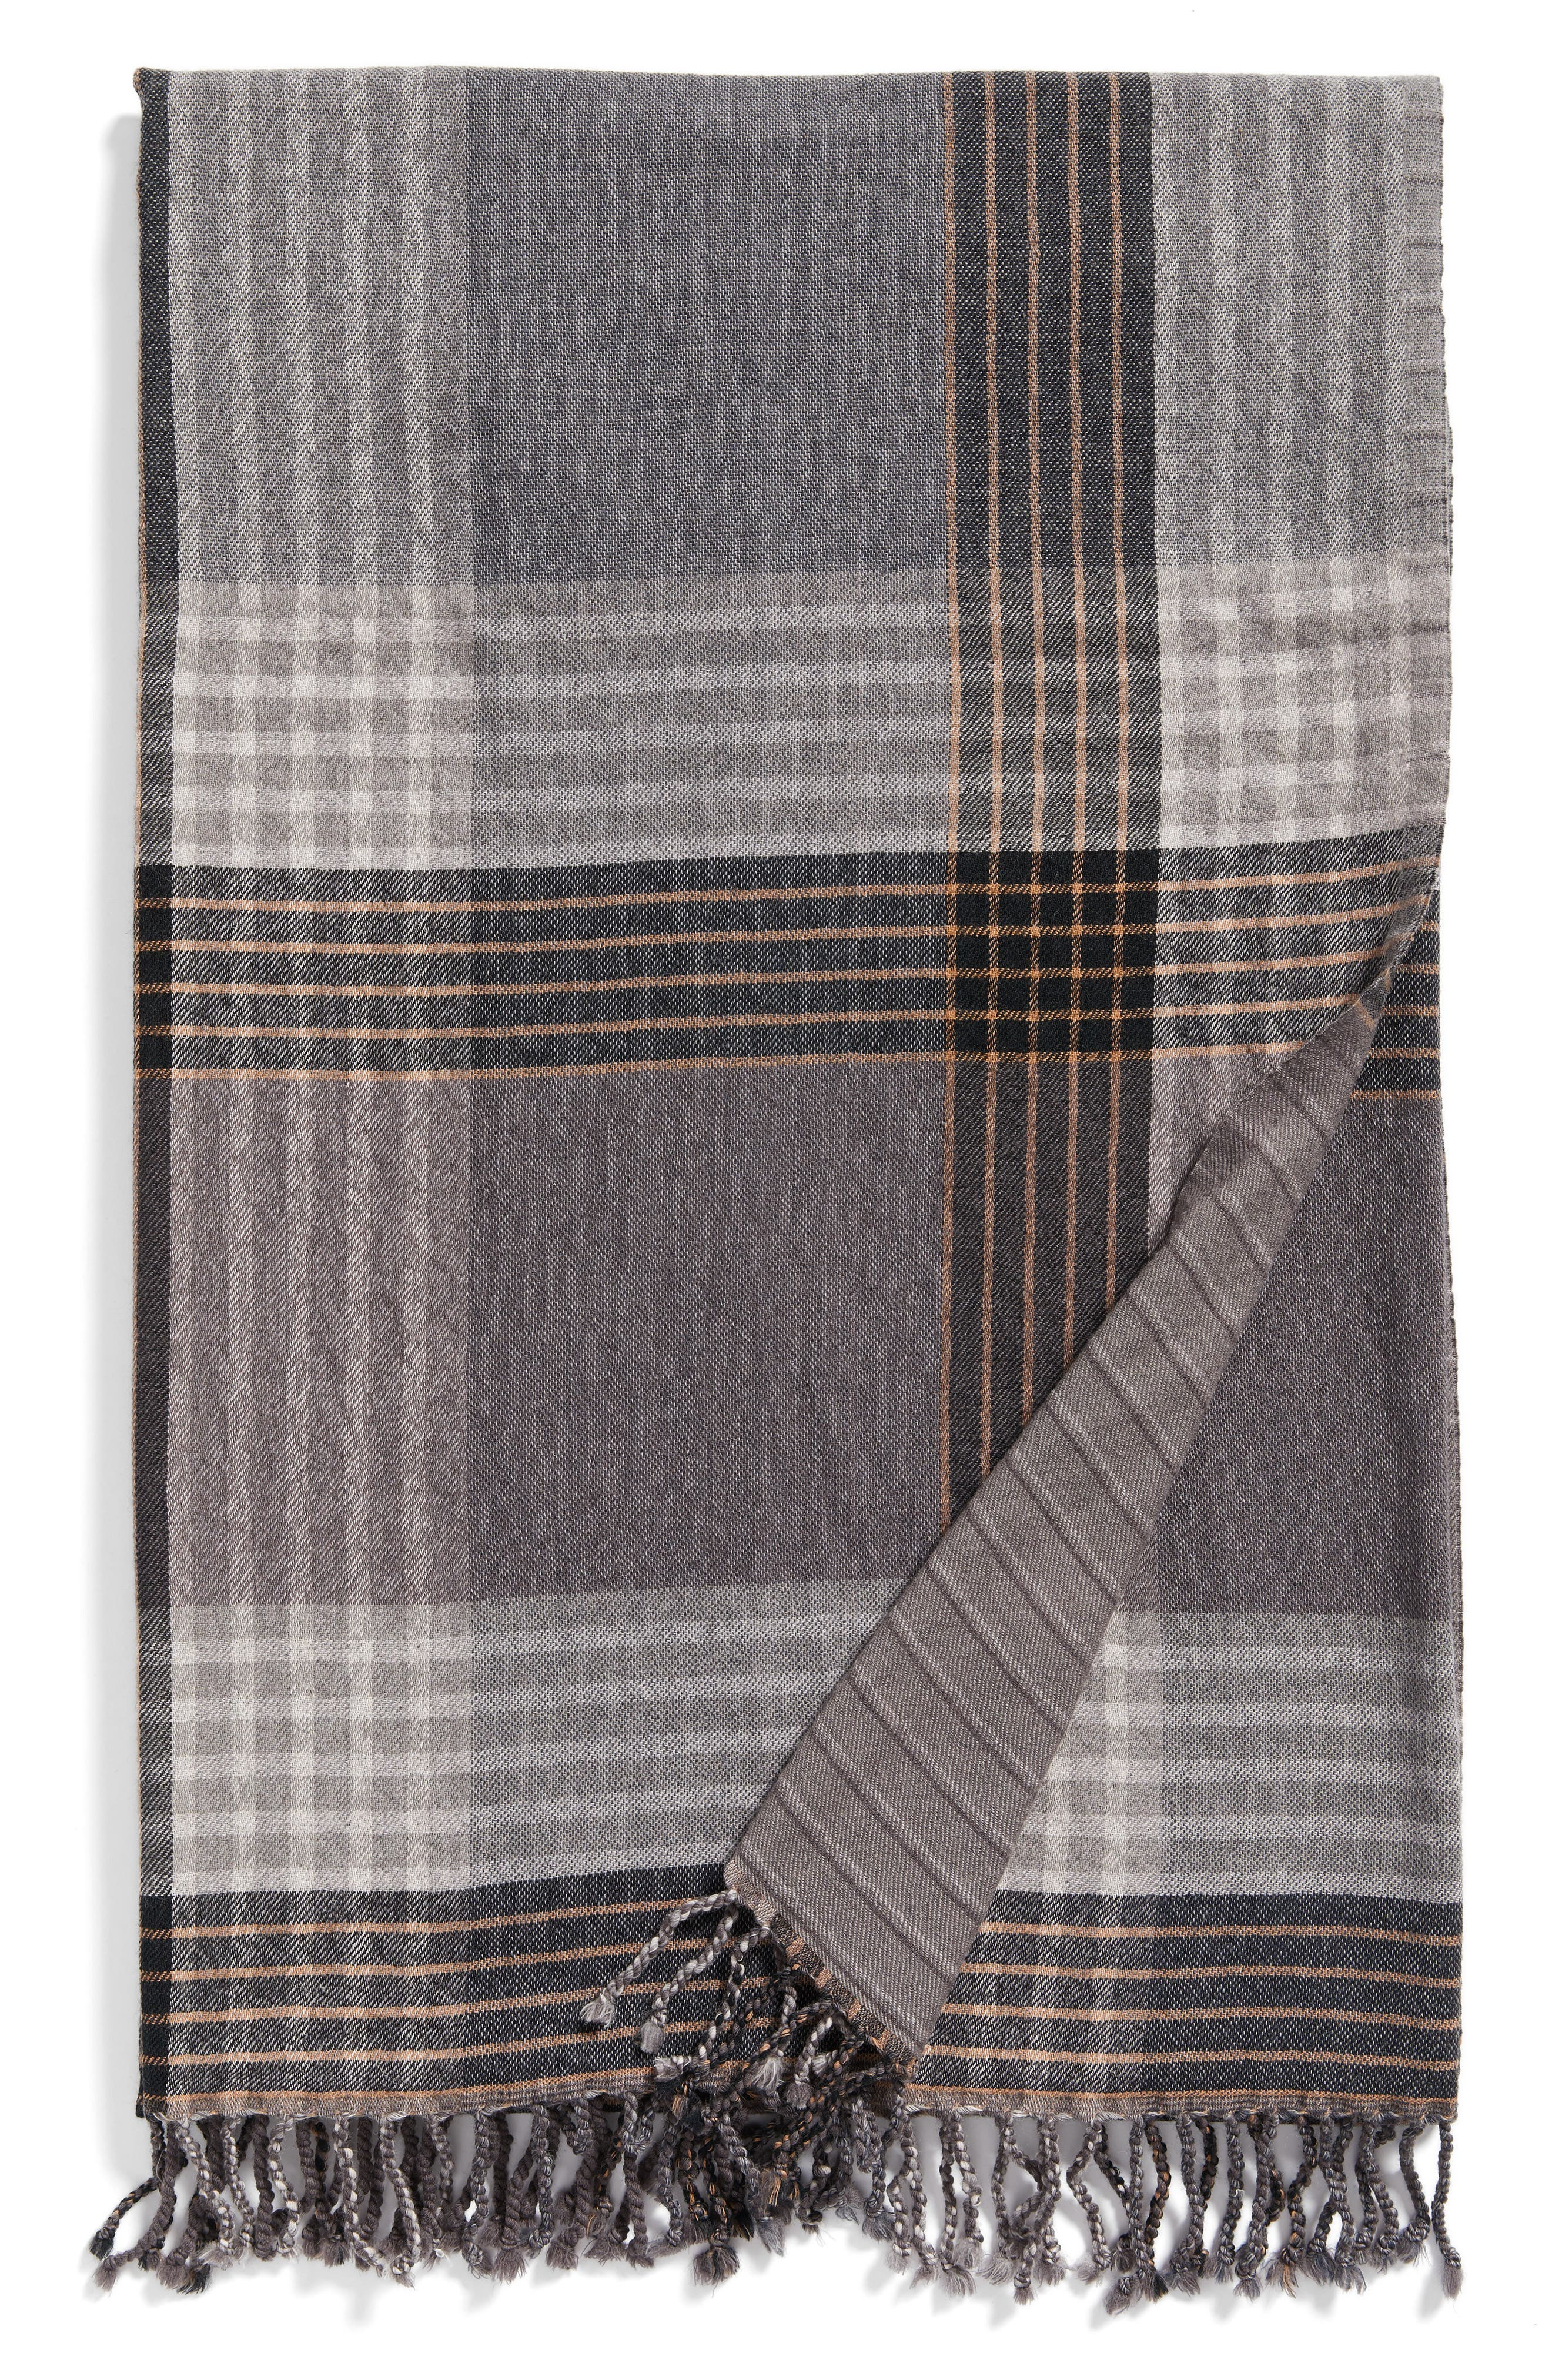 MODERN STAPLES Plaid Double Face Merino Wool Throw, Main, color, 060